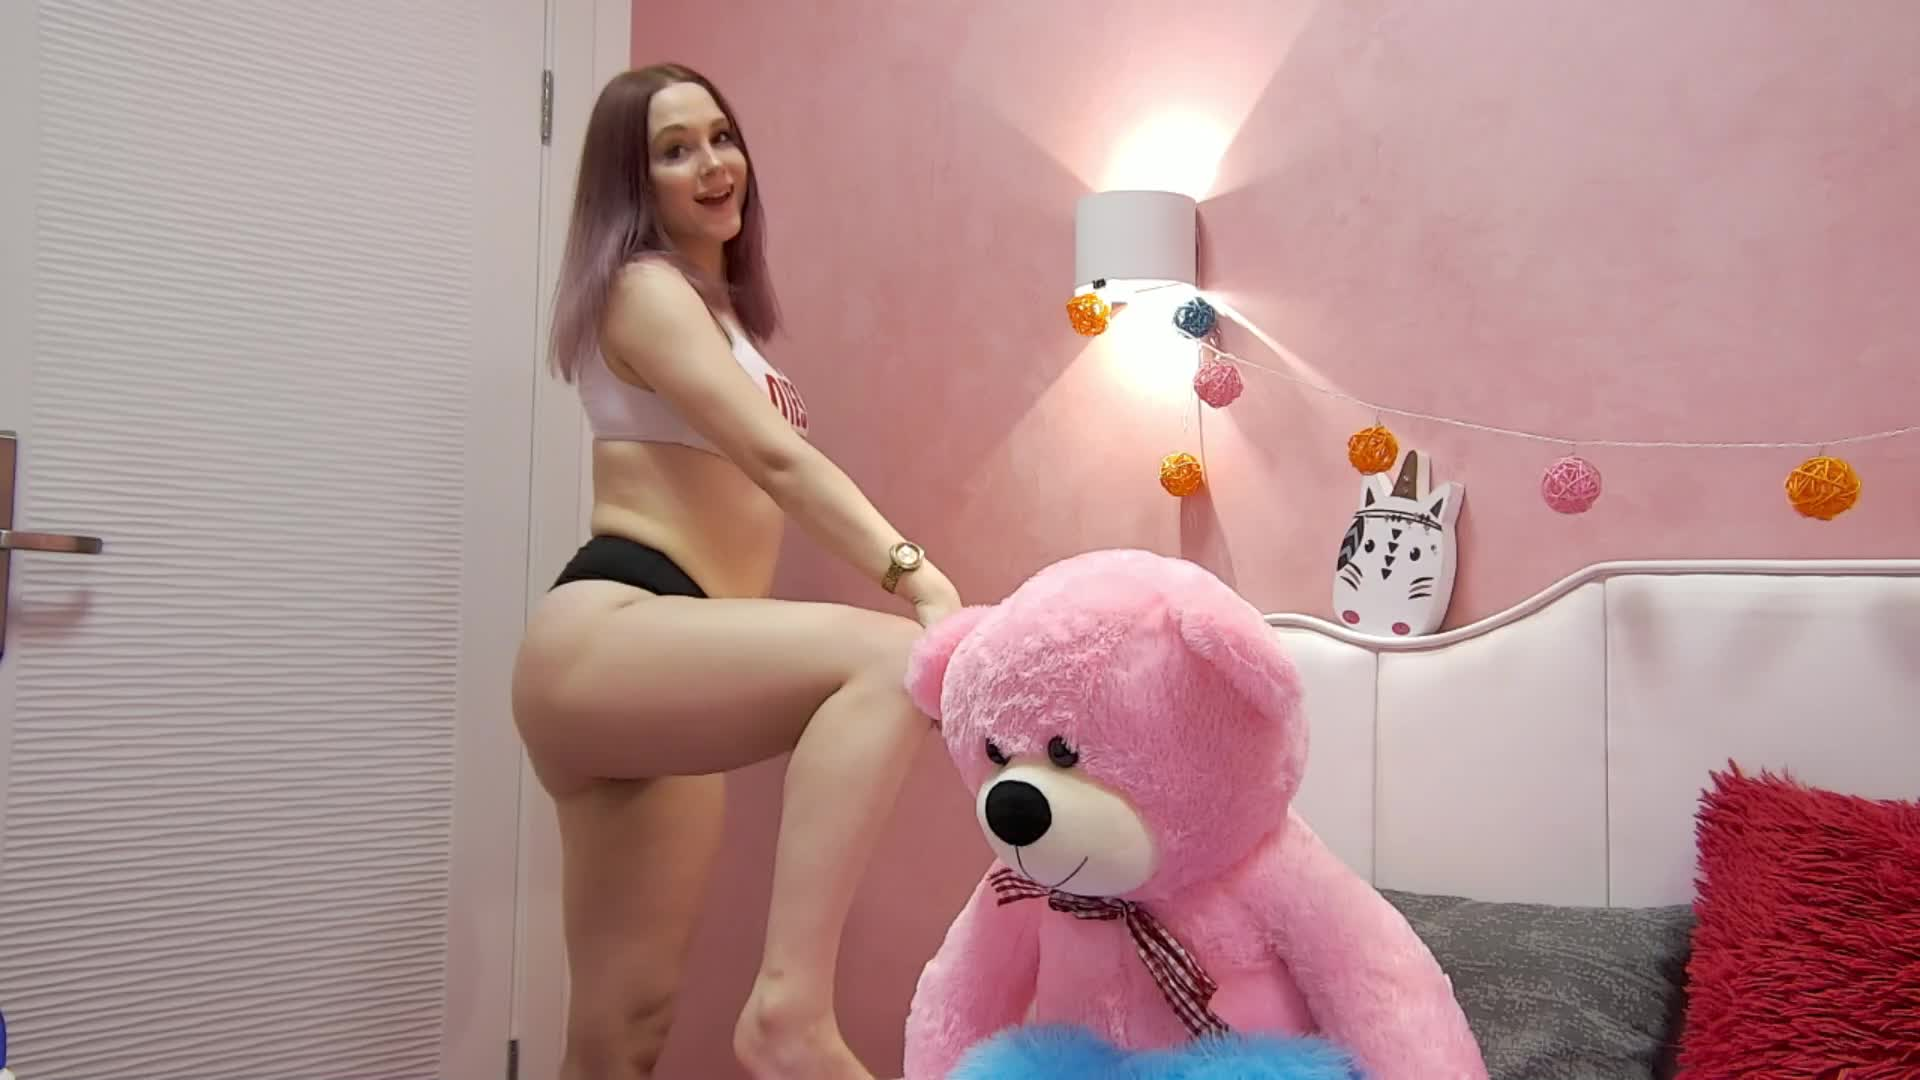 Lally_Pop cam pics and nude photos 4